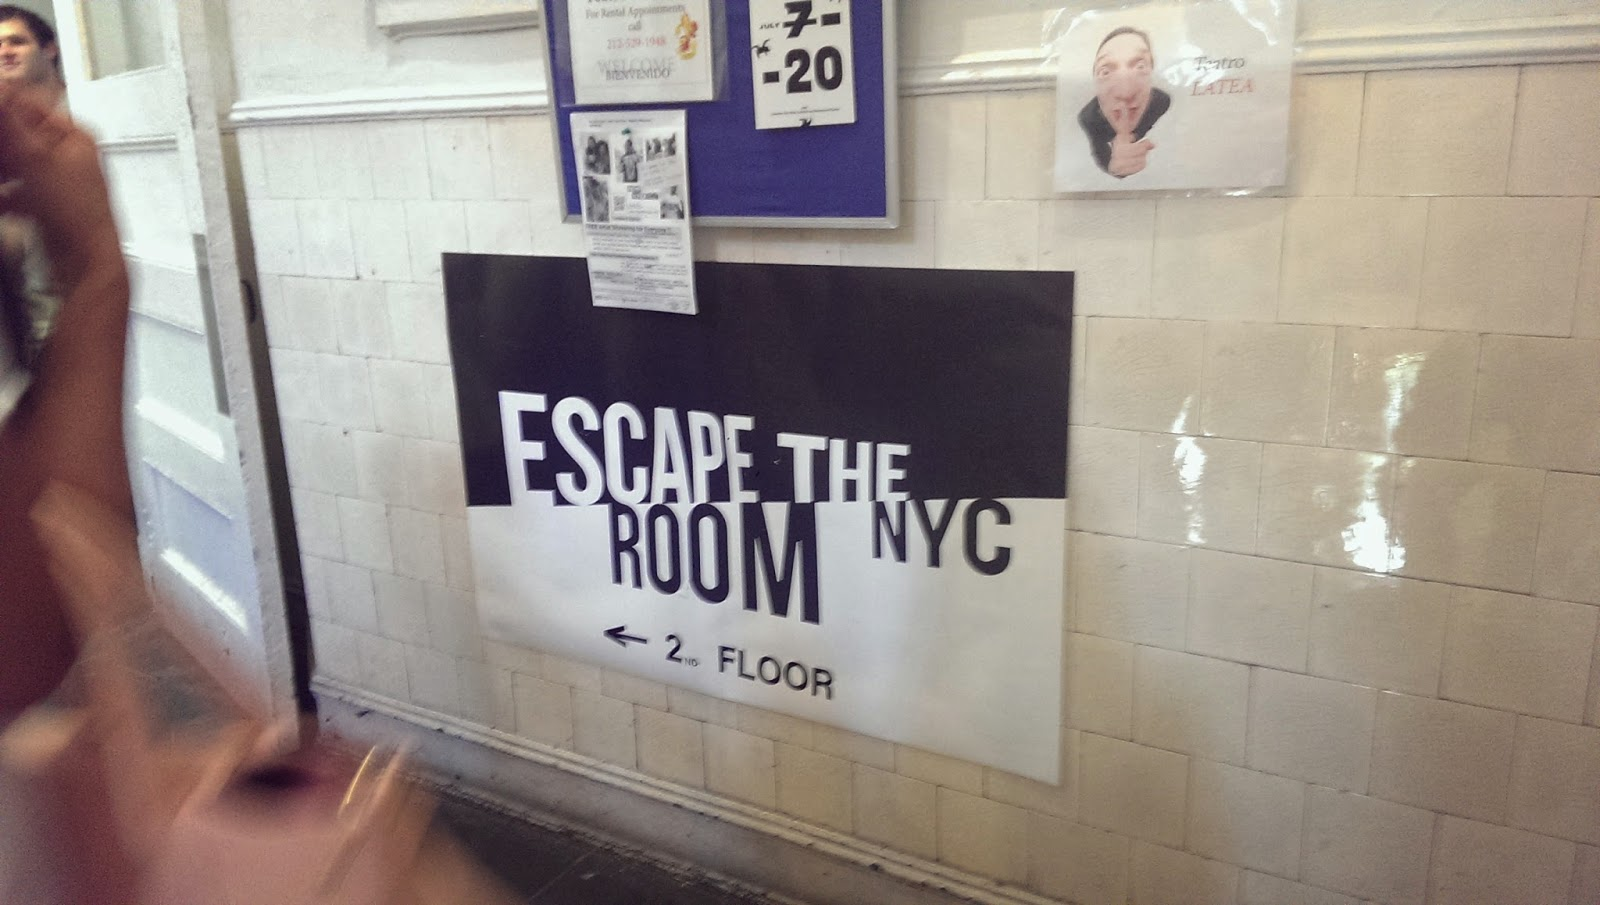 Escape the Room sign in the staircase